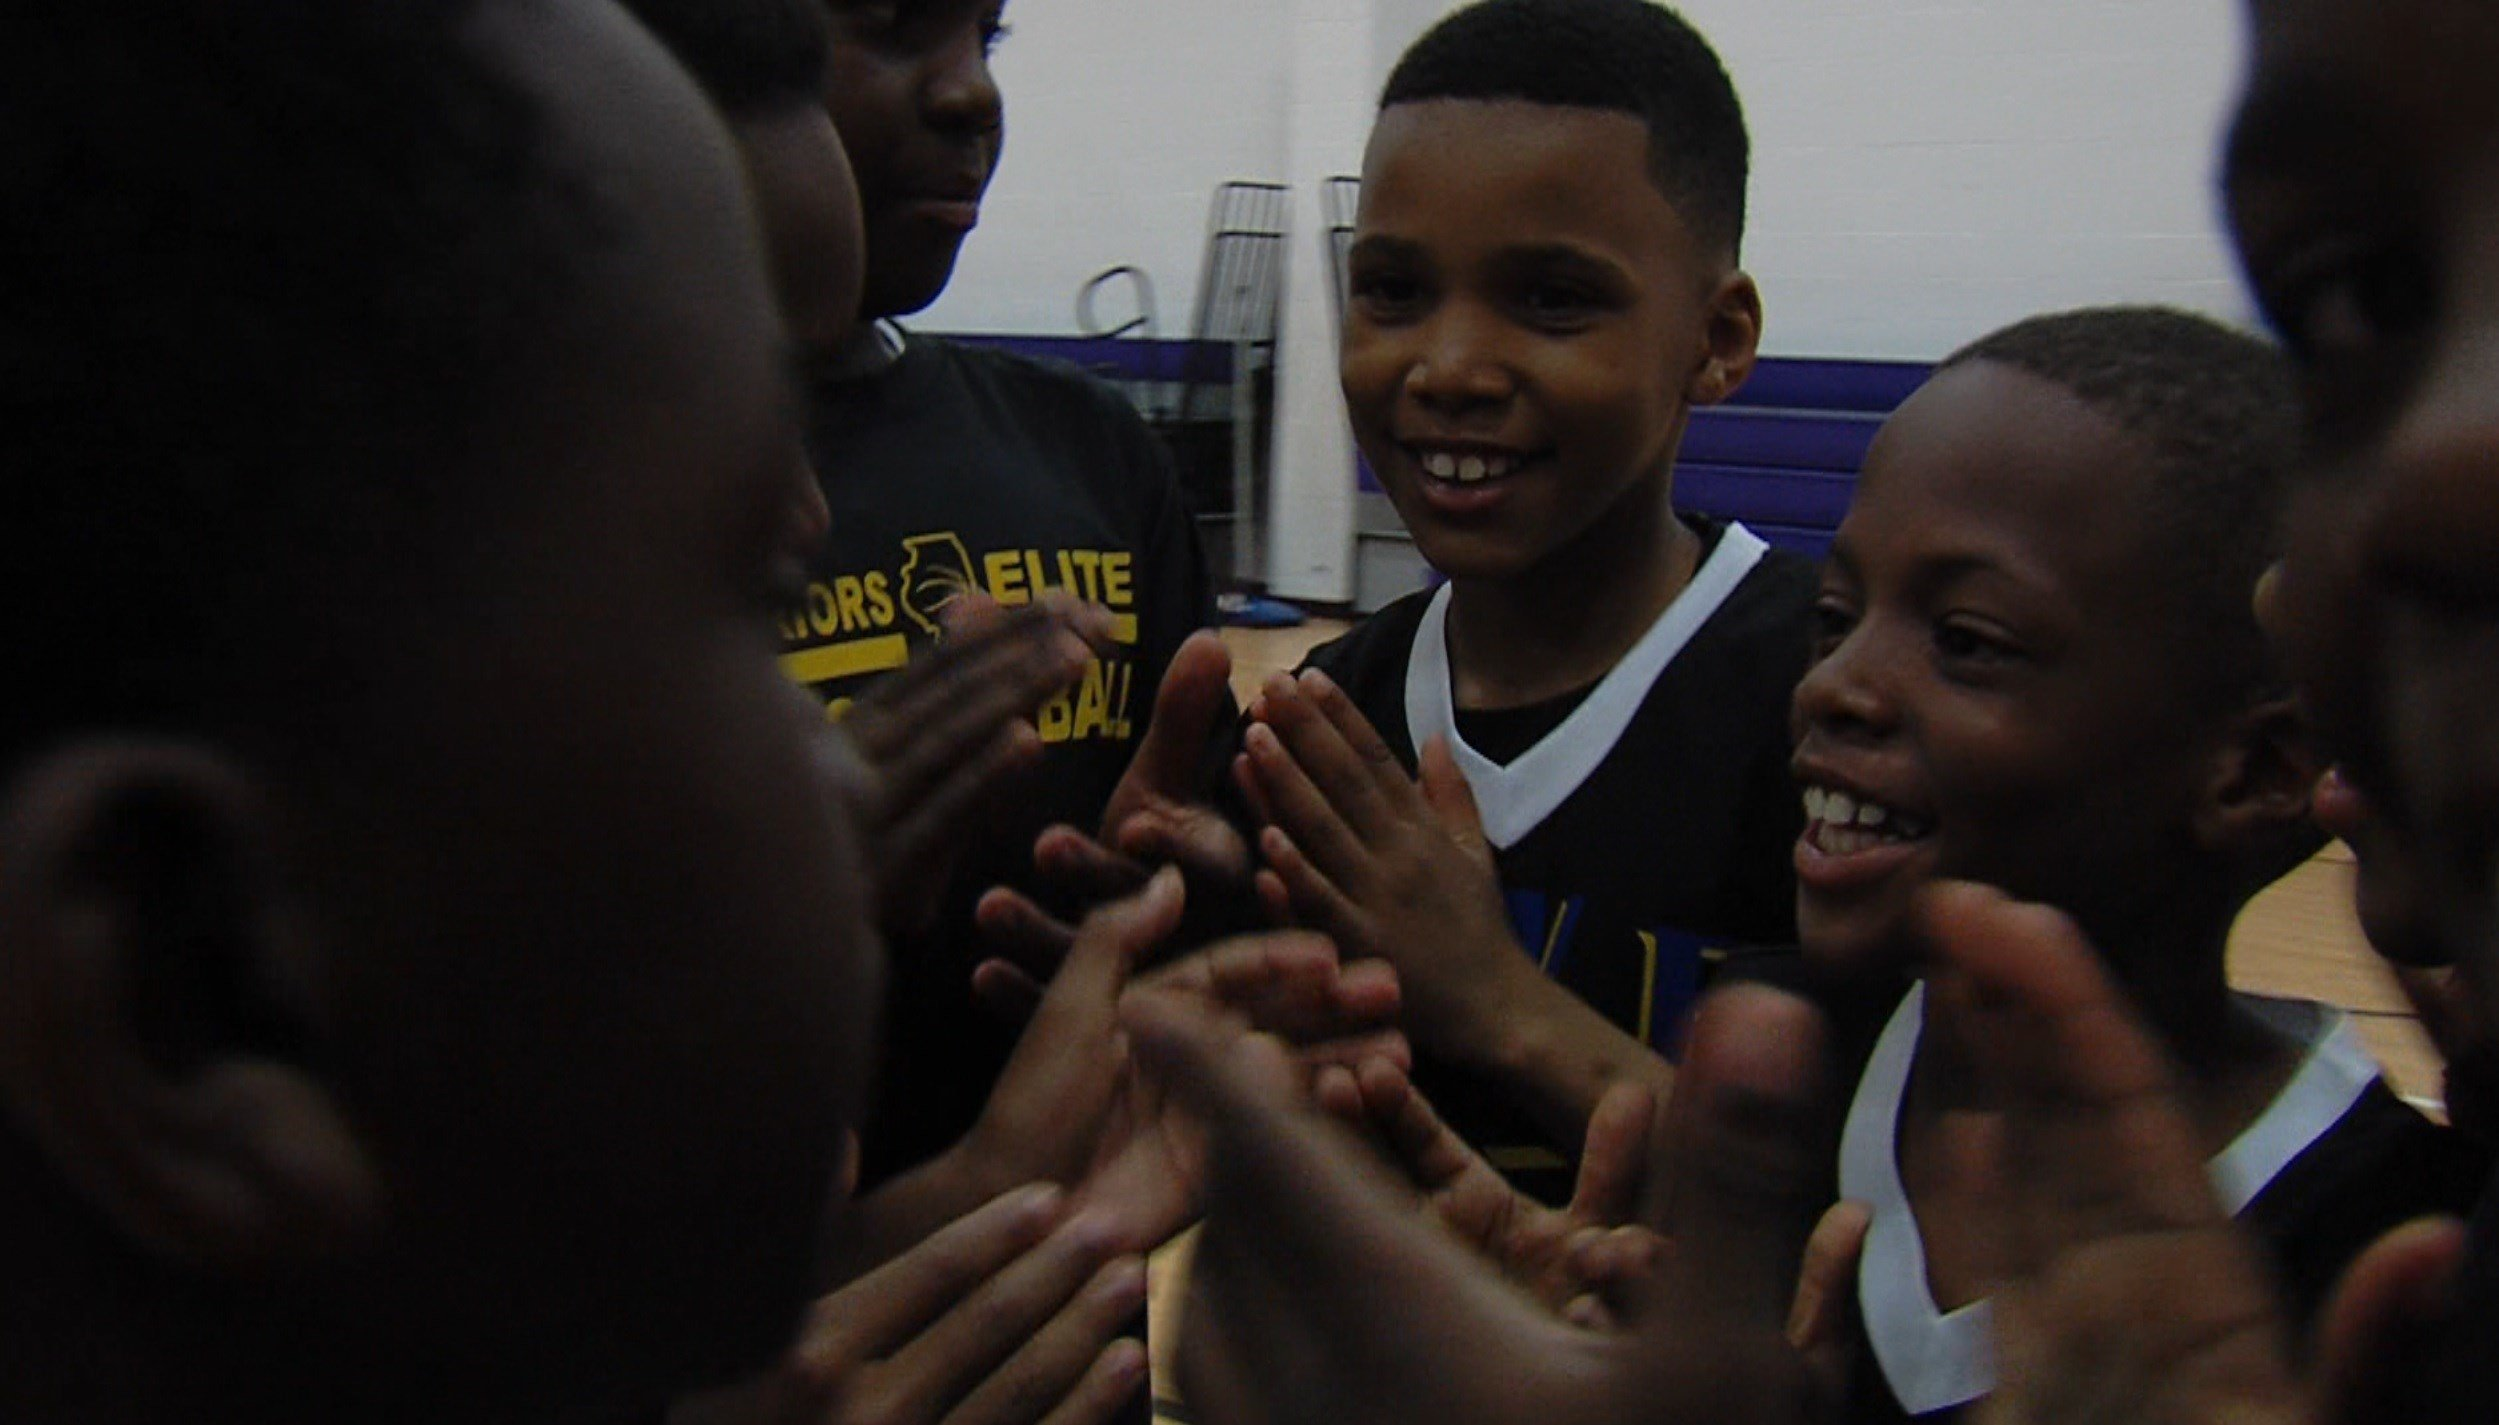 The Decatur-based Illinois Warriors Elite is sending its 9U team to nationals in Orlando this summer.